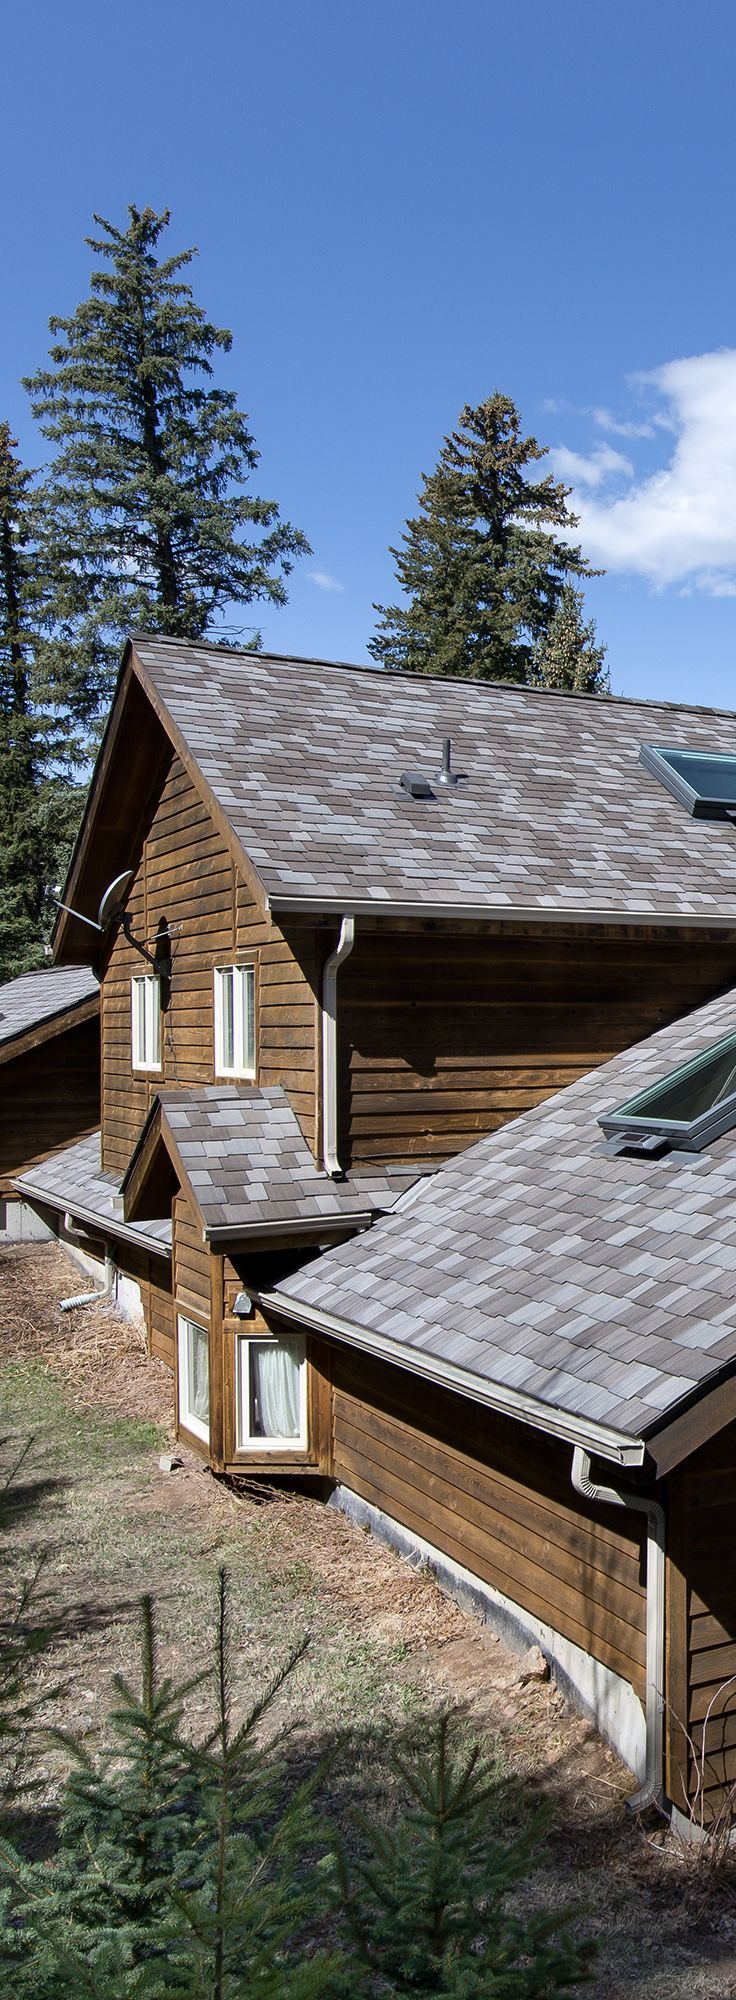 Best Cedar Shake Roofing Shingles Are Perfect For Rustic Home Renovations And Ply Gem S Composite 400 x 300